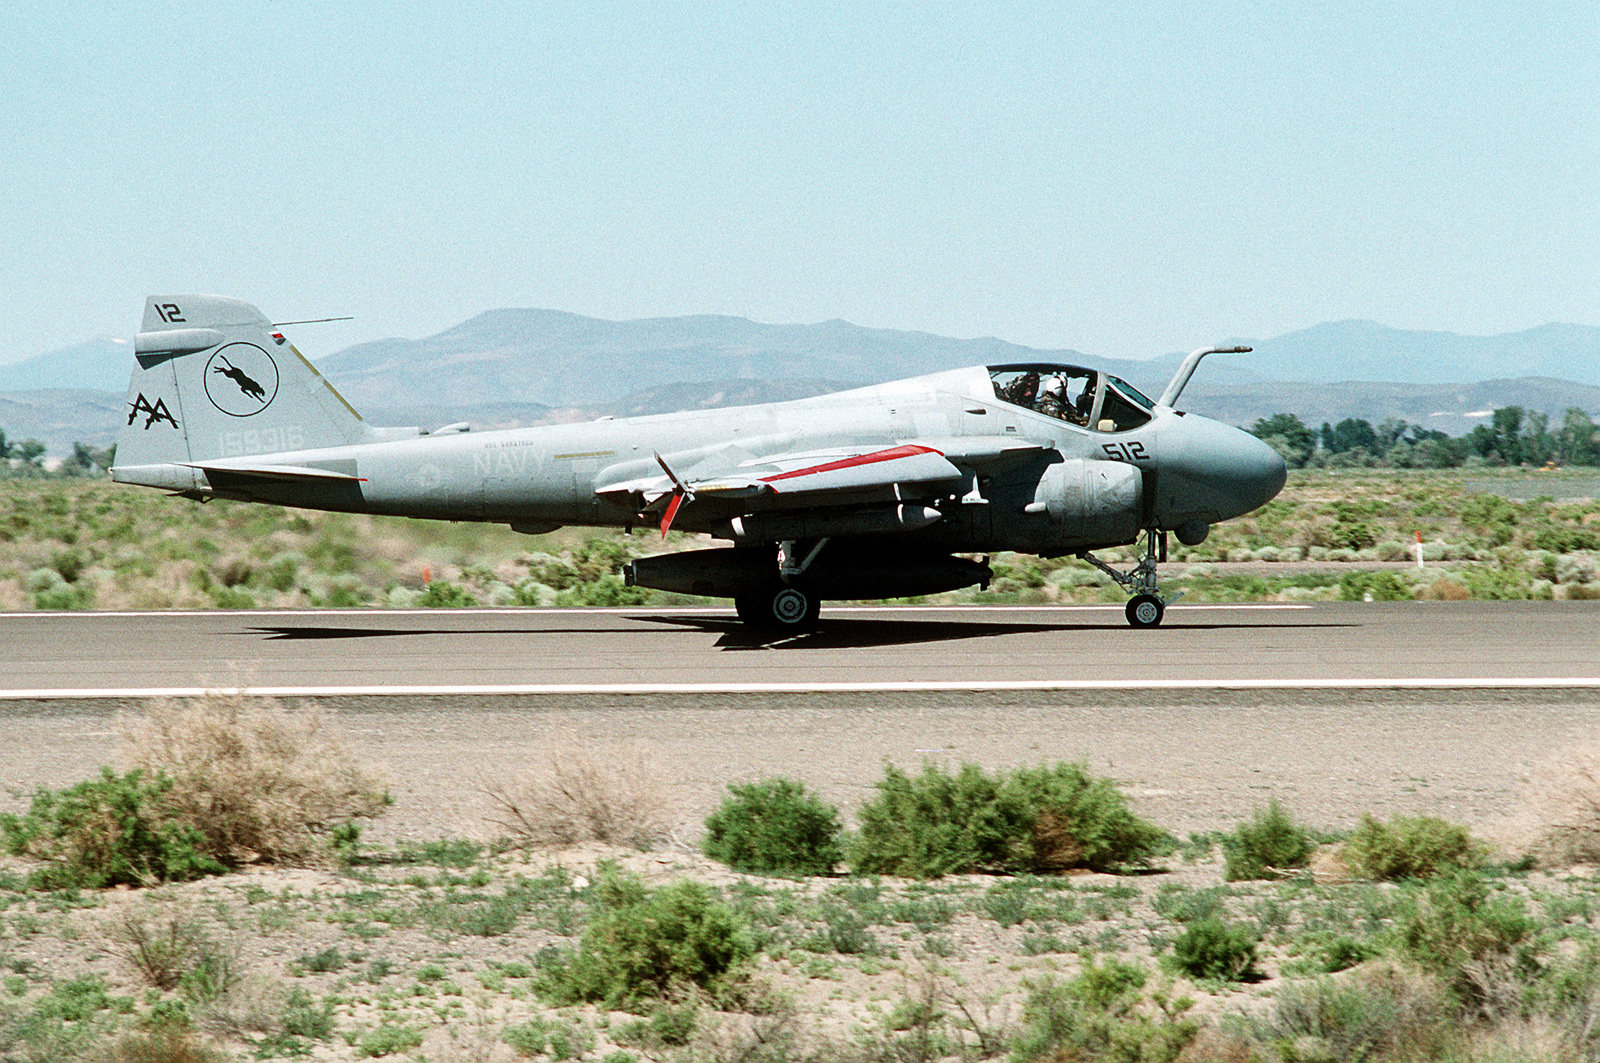 An Attack Squadron 65 (VA-65 ) A-6E Intruder aircraft taxis on the runway after landing following a training sortie with Carrier Air Wing 17 (CVW-17) against a simulated radar threat environment. The aircraft is equipped with a fuel storage tank for aerial refueling missions